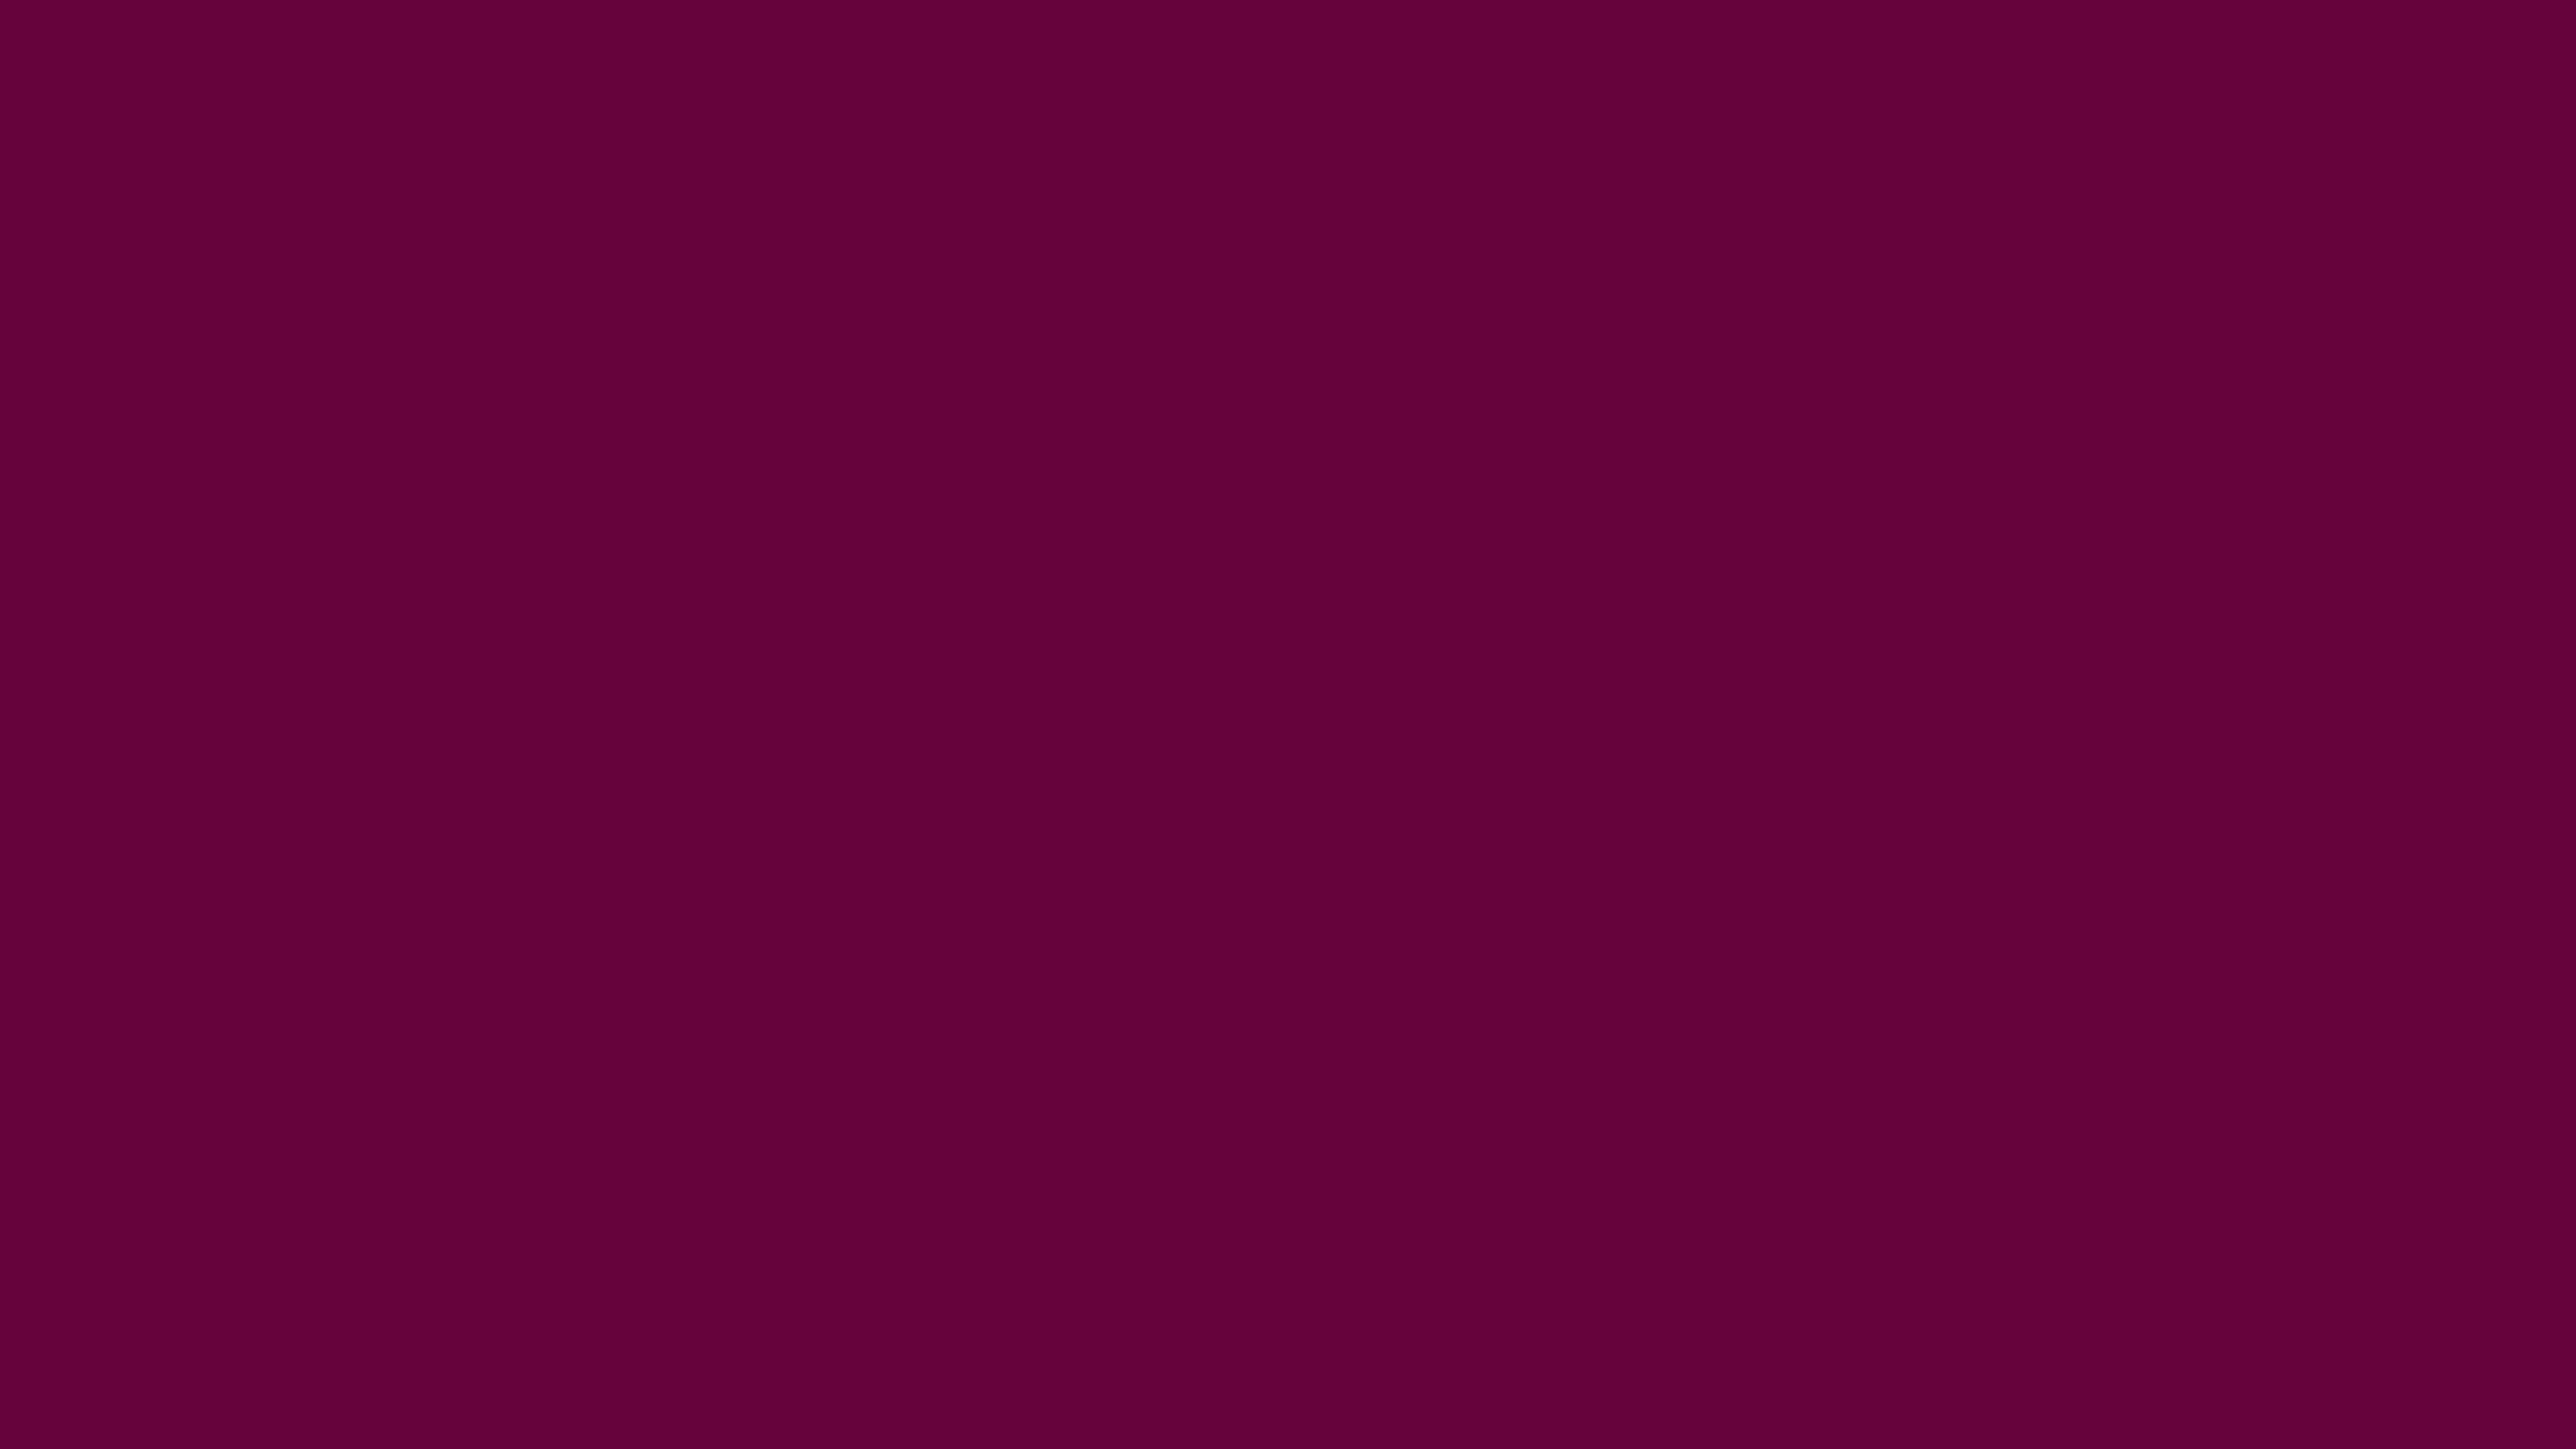 3840x2160 Imperial Purple Solid Color Background